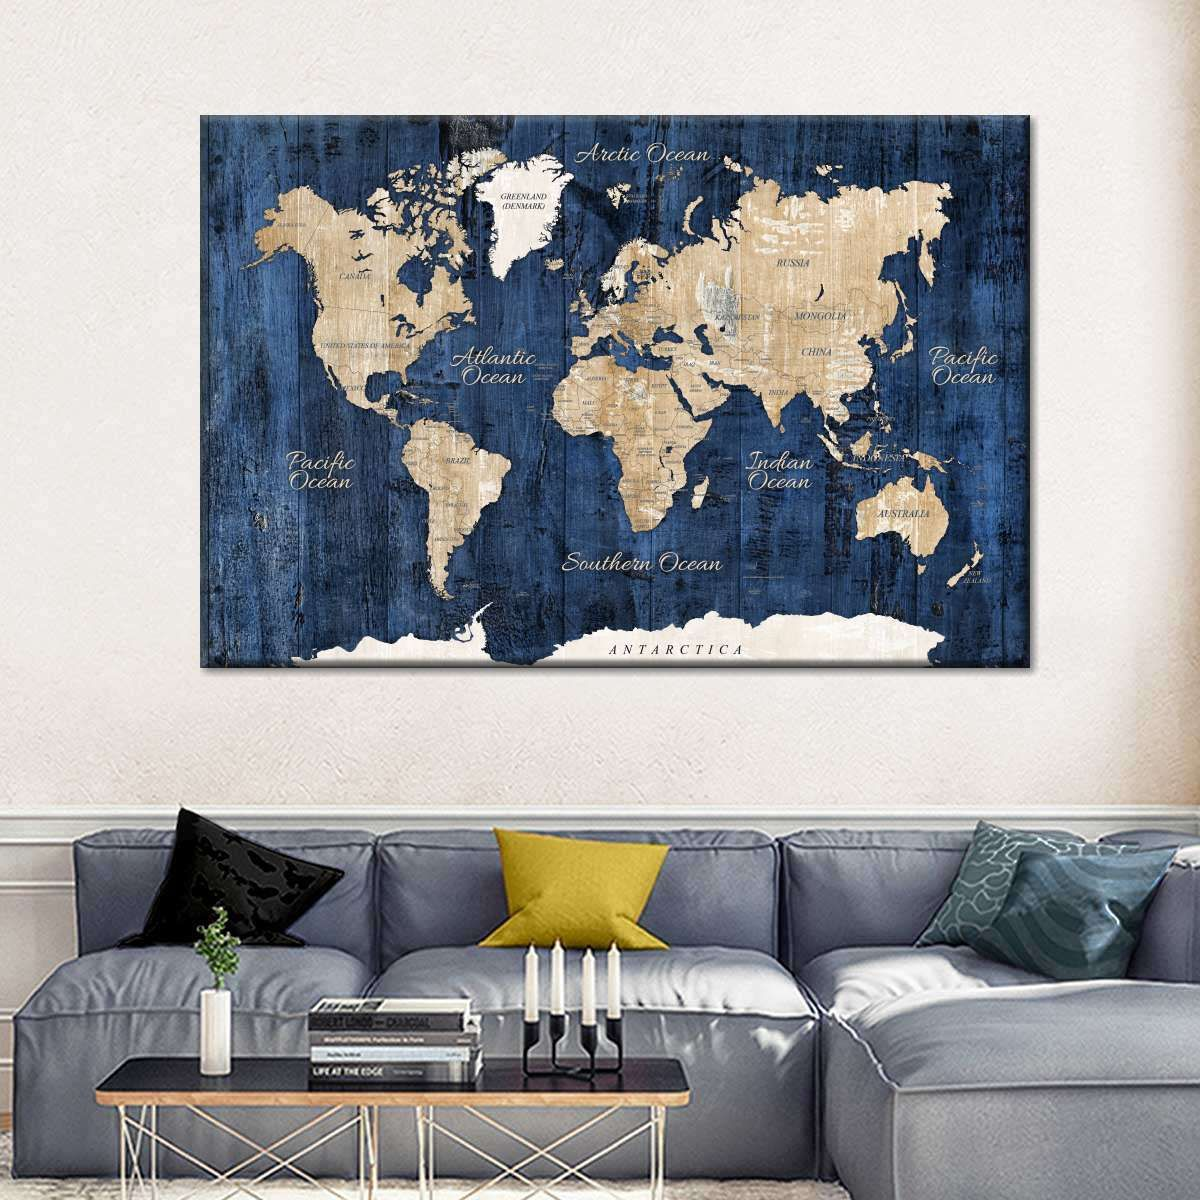 World Map On Wooden Wall Multi Panel Canvas Wall Art World Map Wall Decor World Map Wall Art World Map Decor